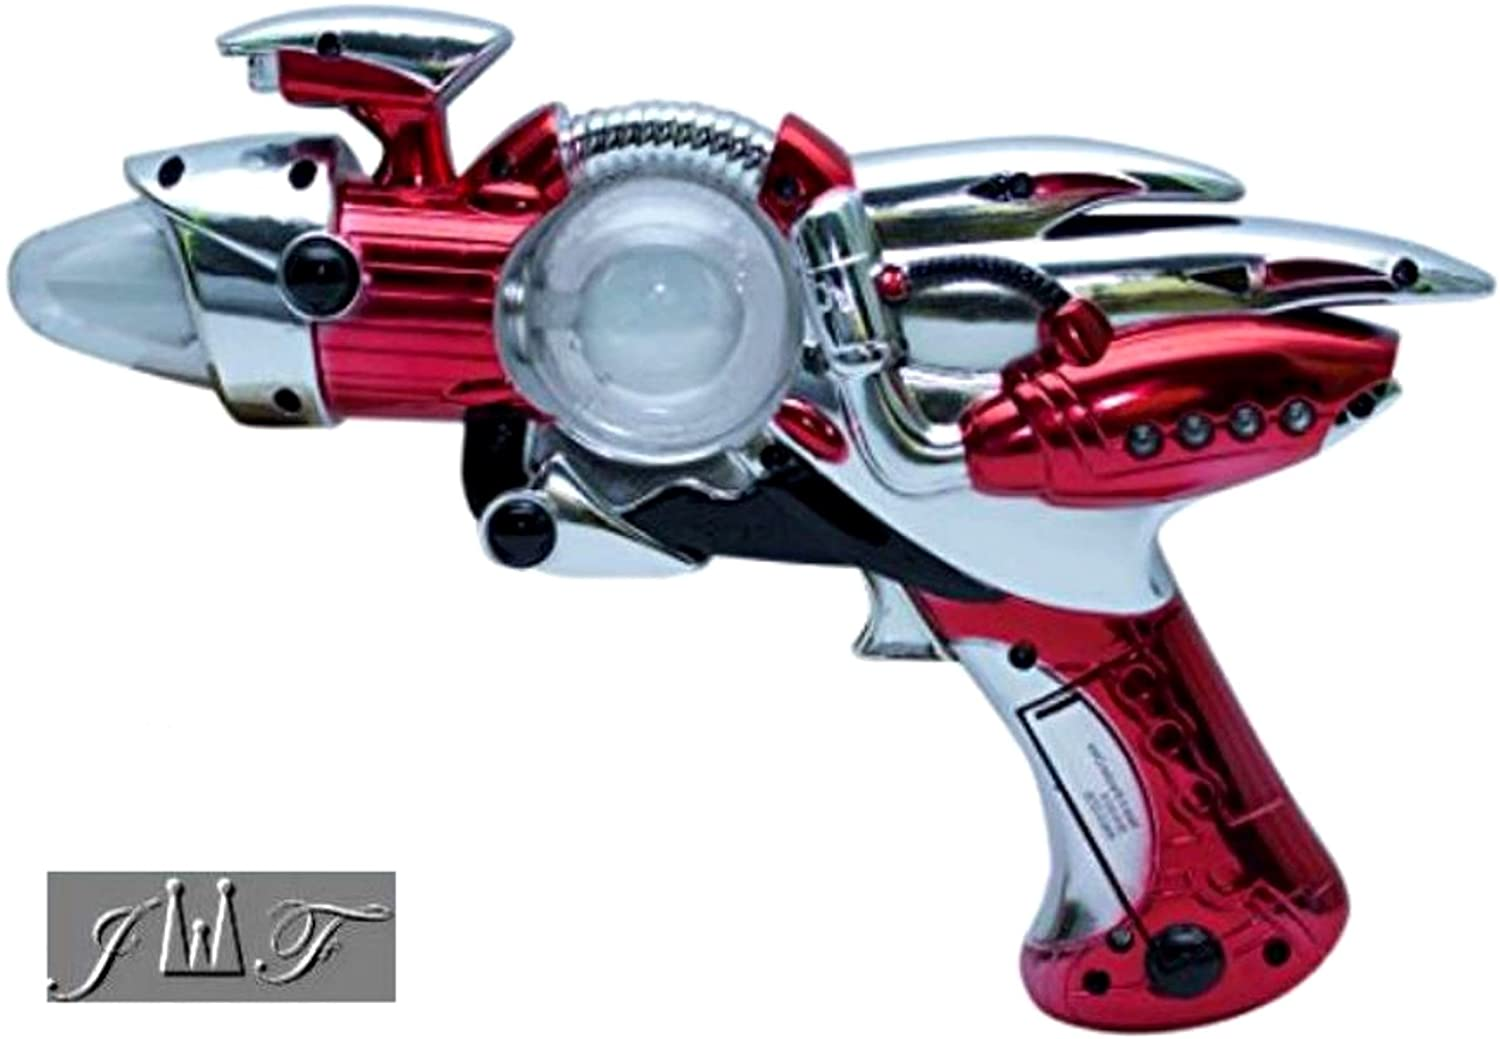 JEWELS FASHION Light- Up Toy Gun - Red Or Blue Laser Space Gun Blaster Toy -Noise Making -Super Spinning -11 1/2 Inch- for Children, Play Time, Pretend, Parties, (RED)